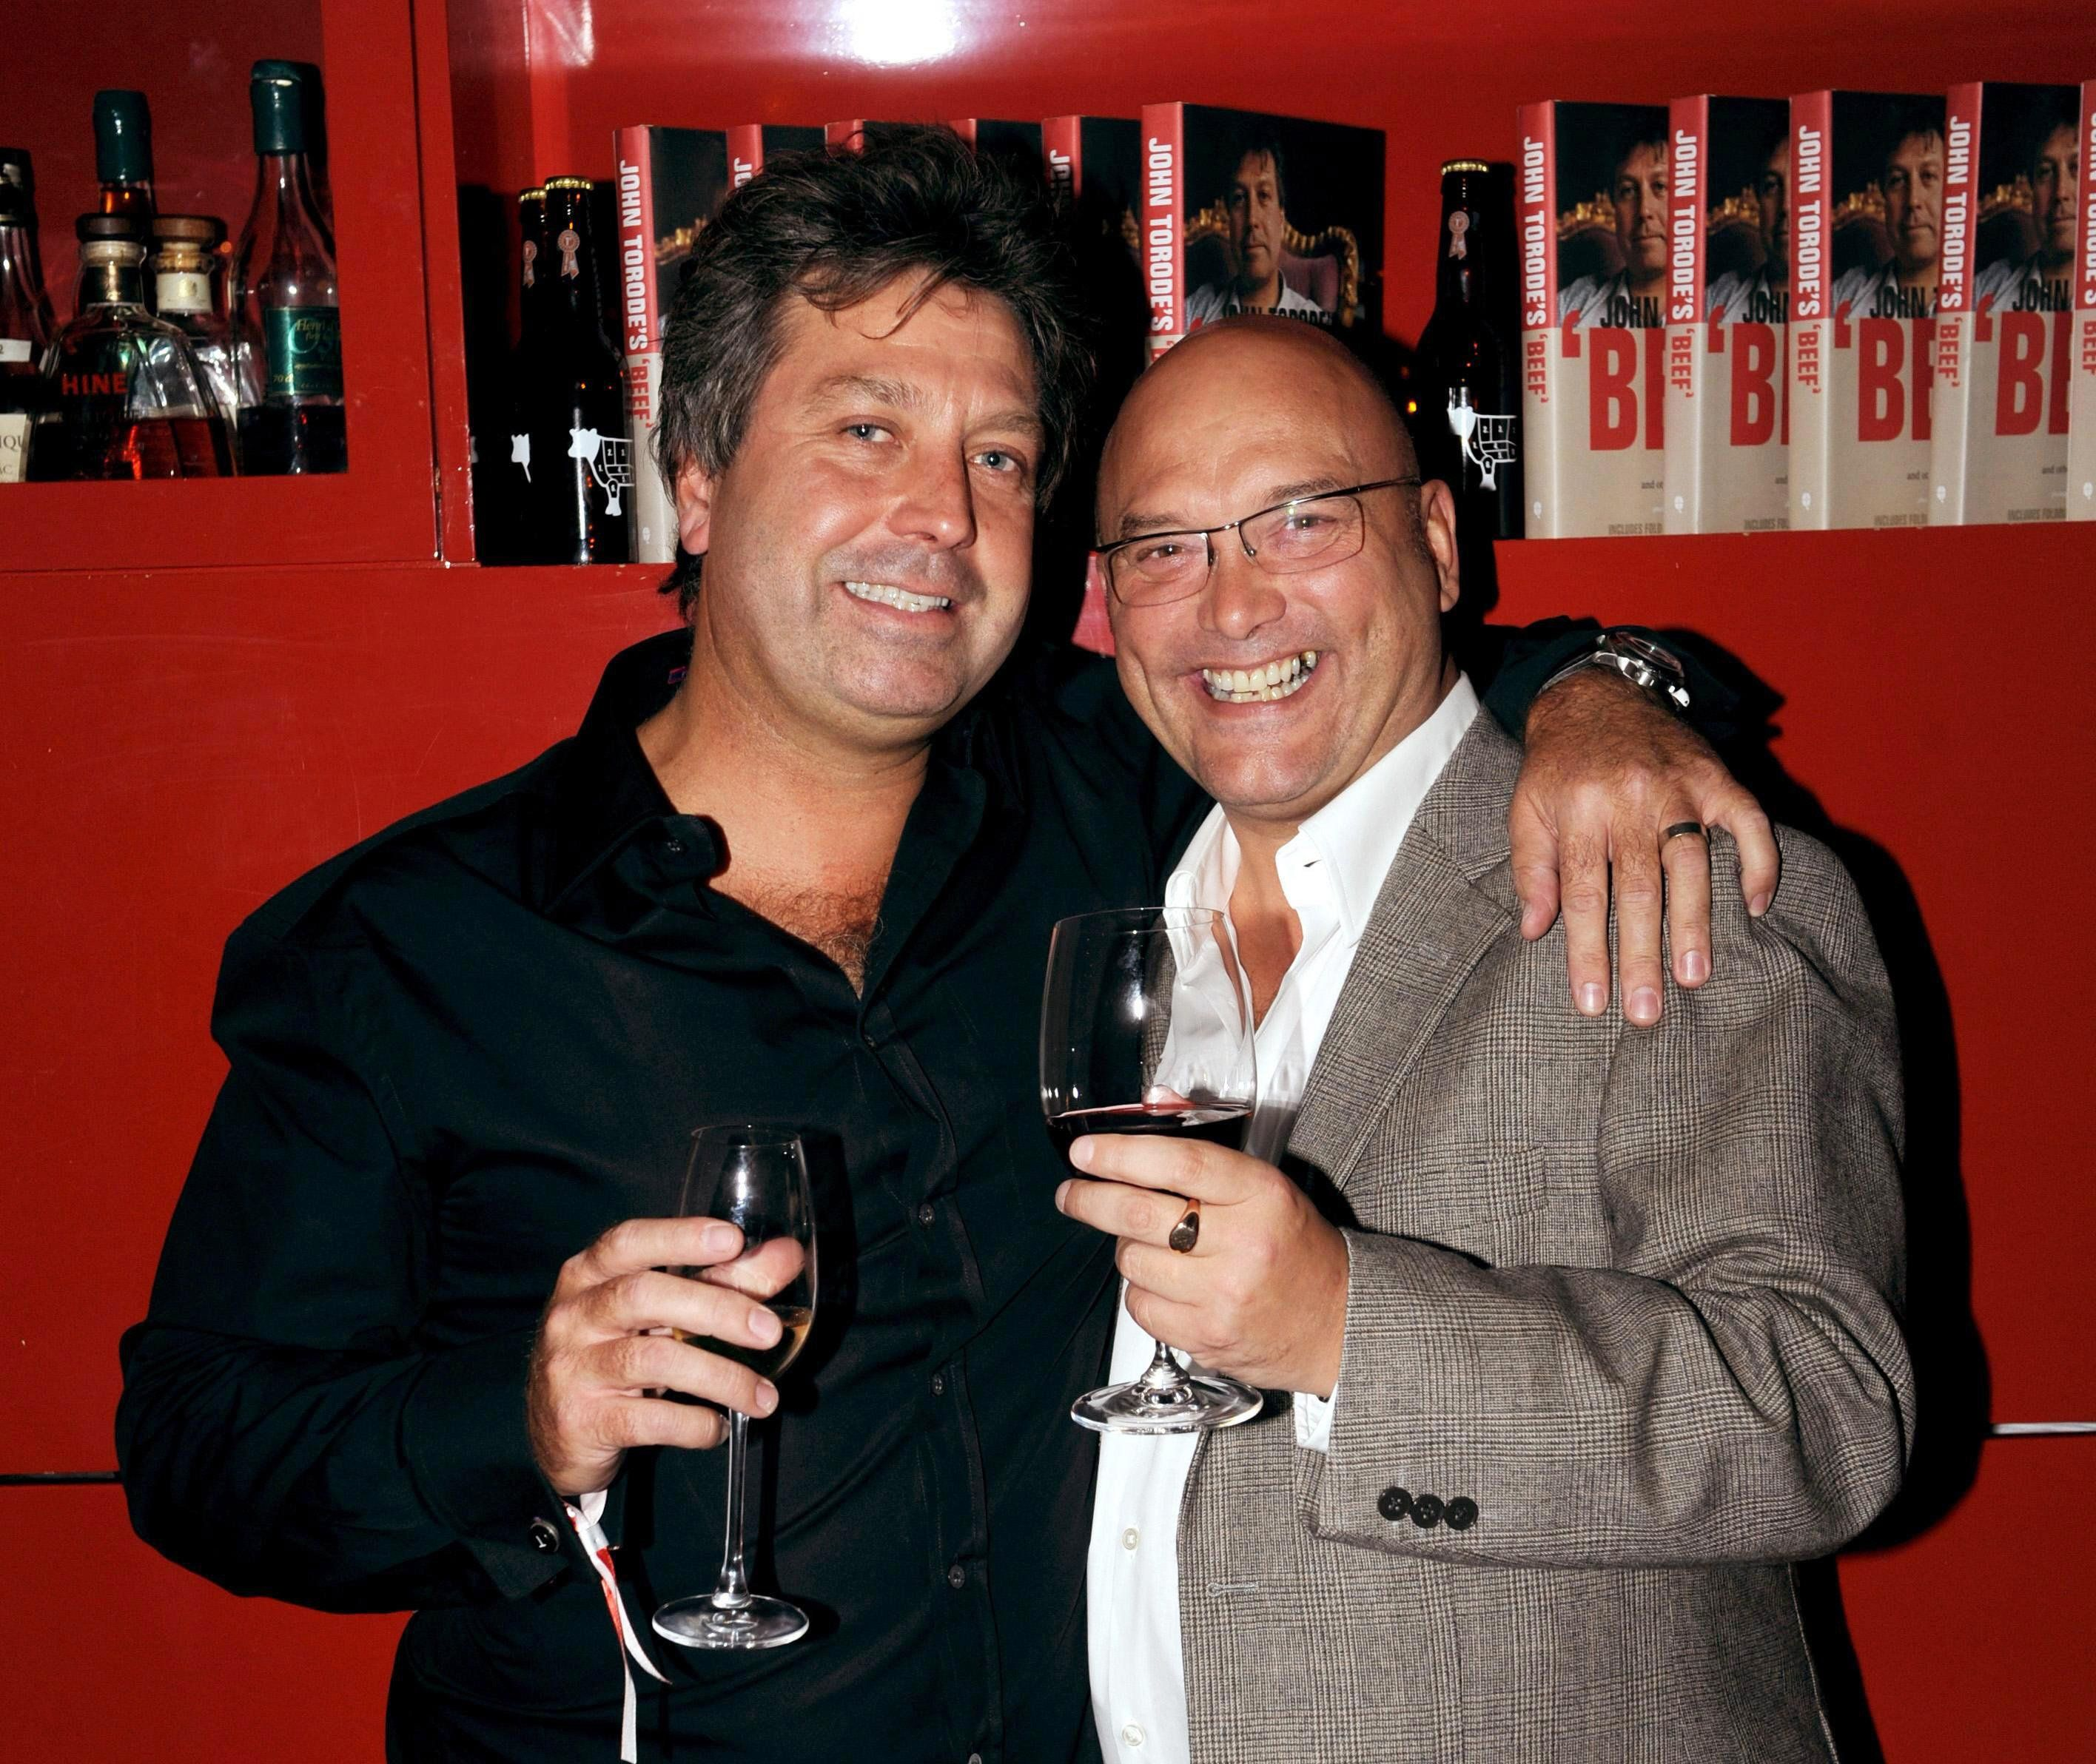 John Torode Has Massively Backpedaled On Those Comments About Not Being Mates With Gregg